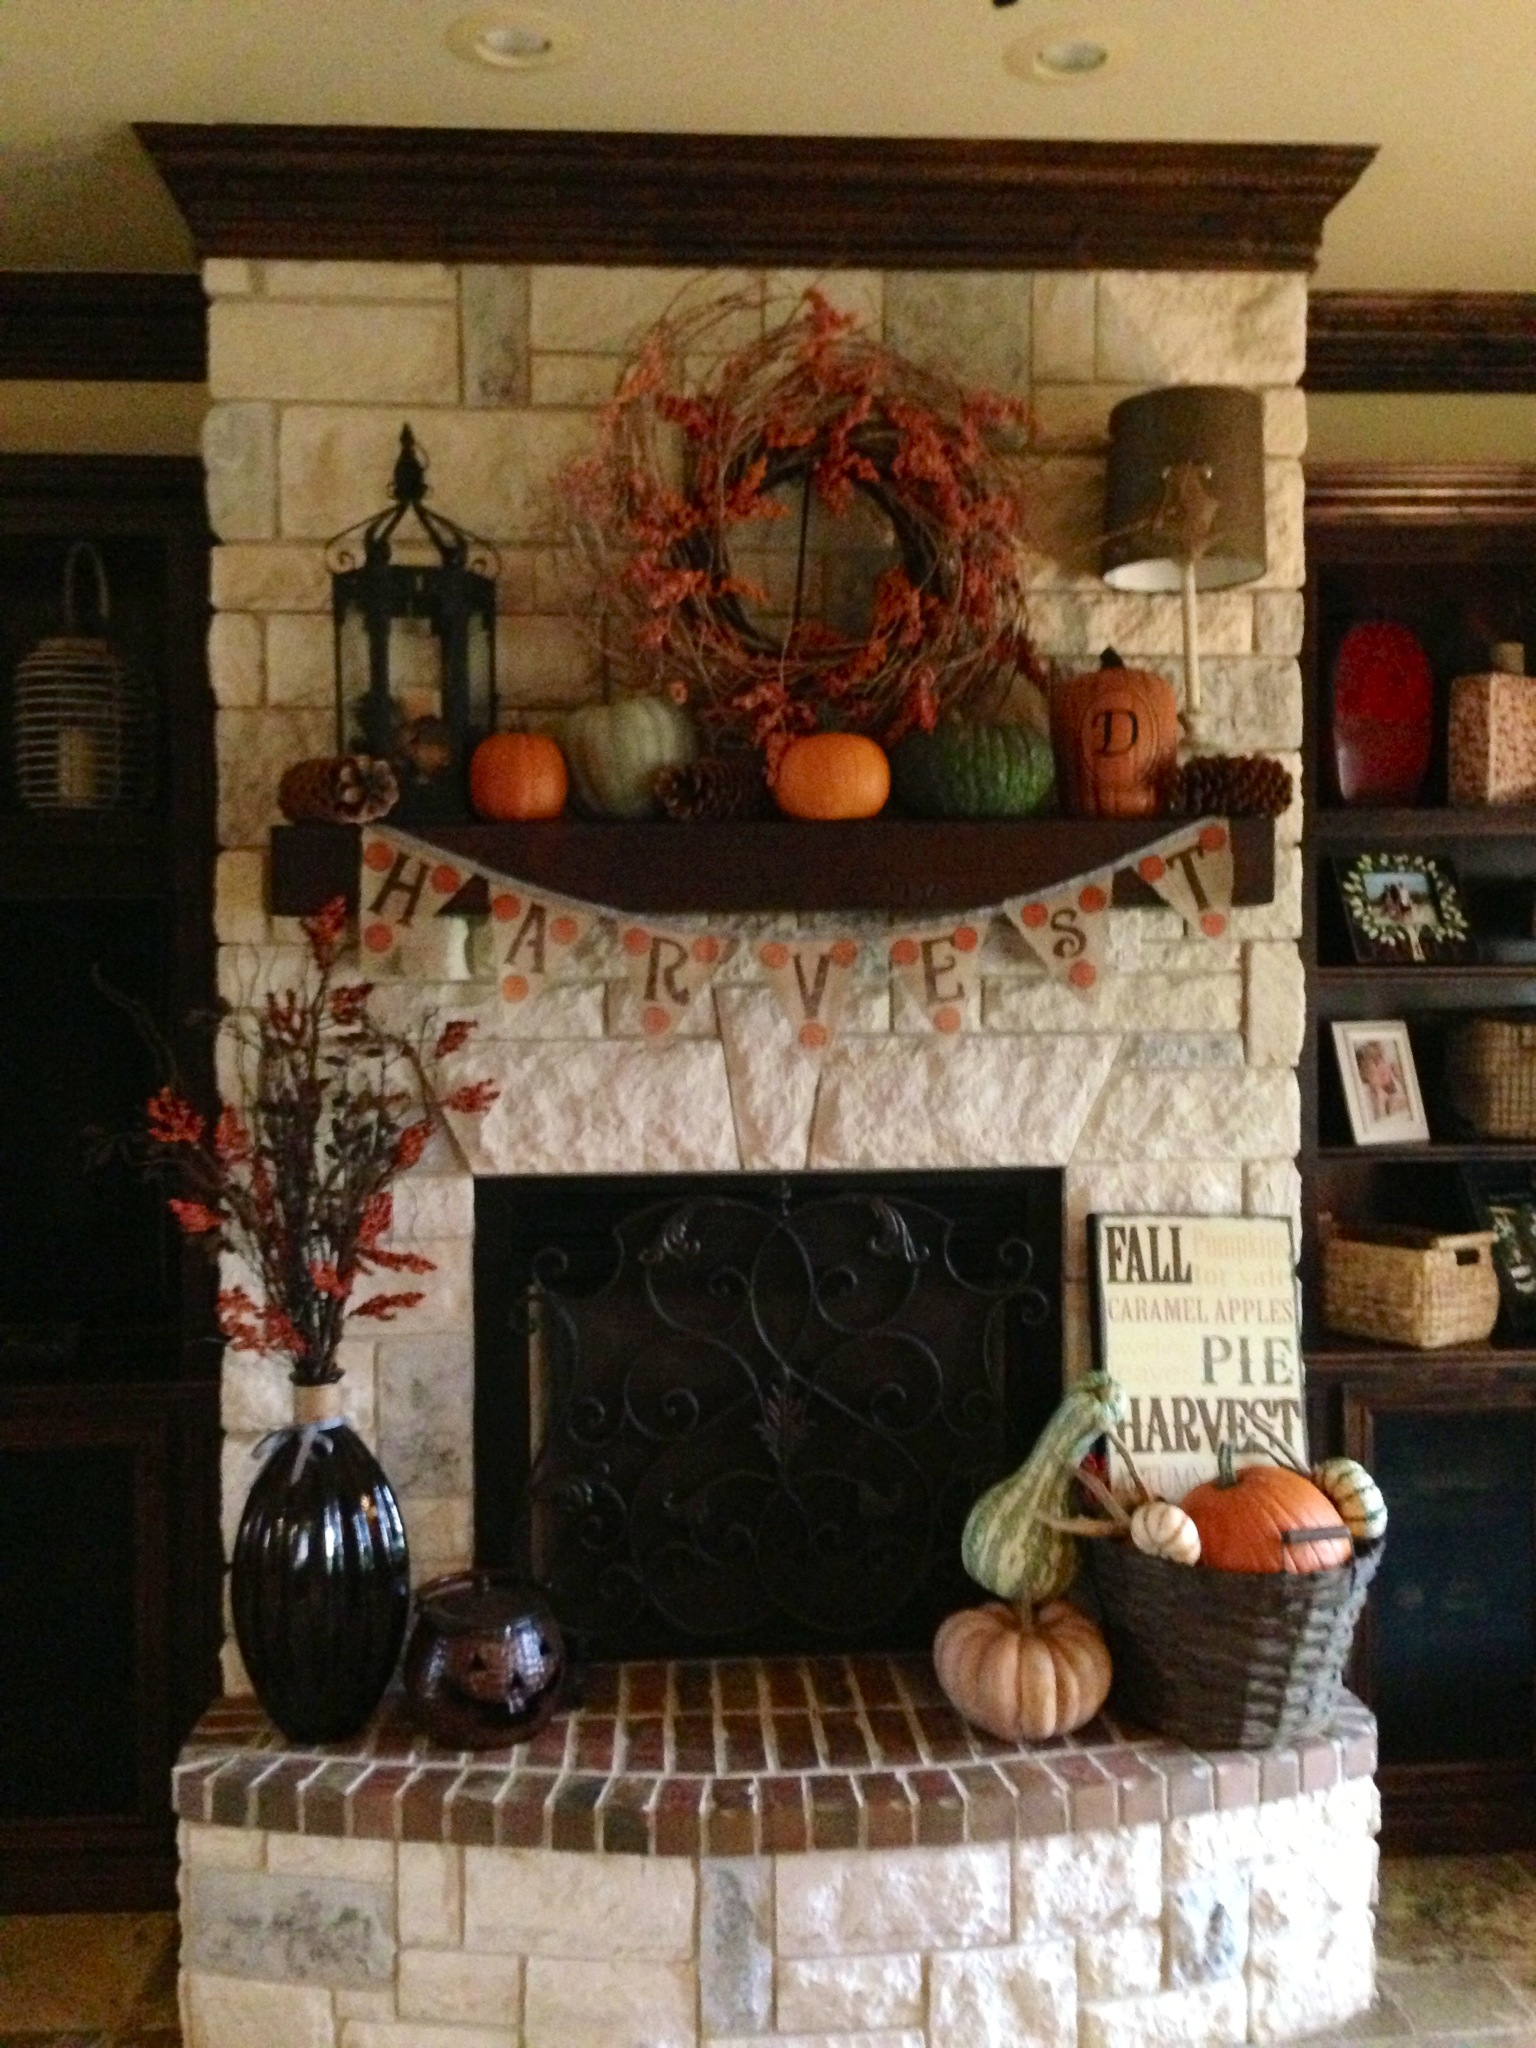 Fall decor on a fireplace mantel. No better way to celebrate the season than with DIT home interior decorations.